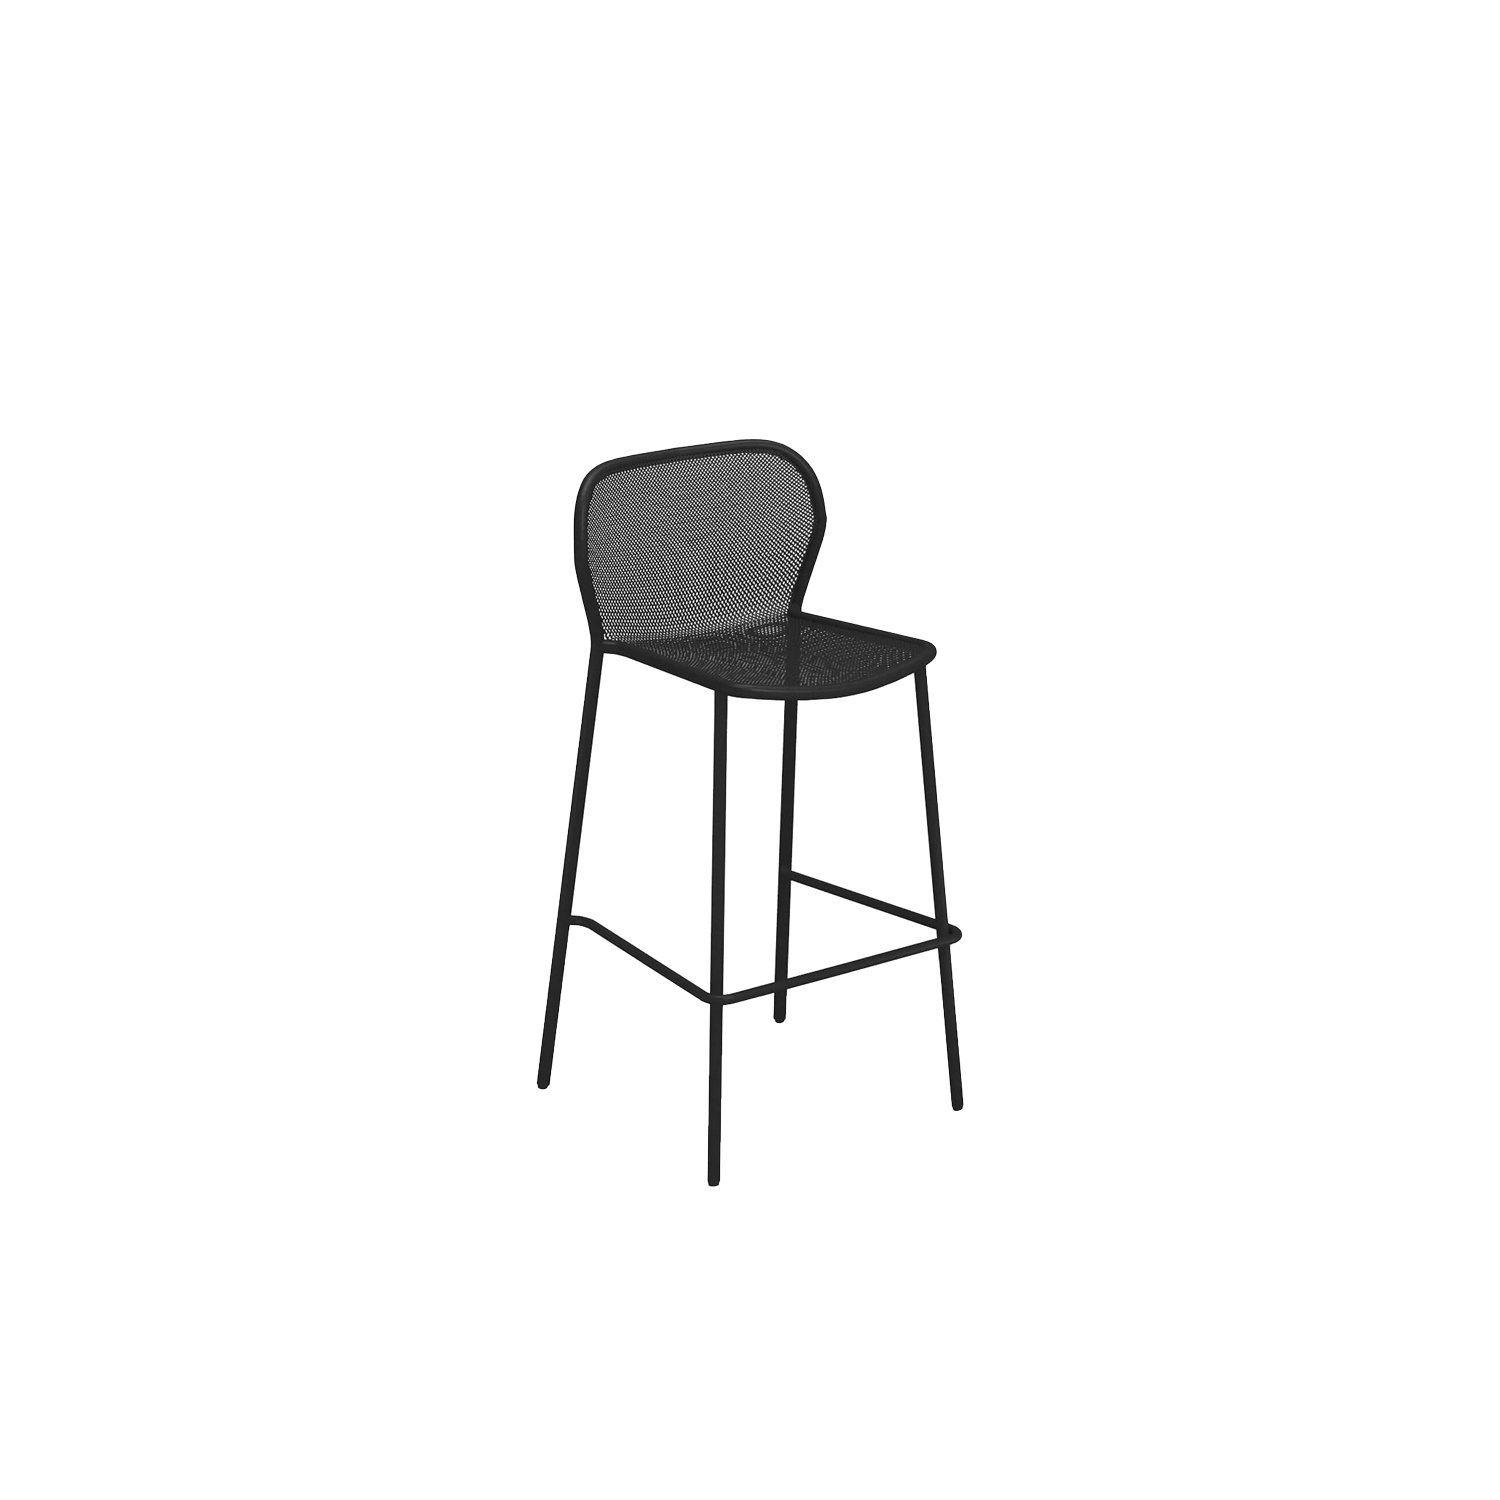 Darwin Barstool - Set of 4 - <p>The ergonomic proportions and lightness of structural lines guarantee both comfort and adaptability. Darwin is a steel collection, which revisits classic themes, in a delicate metal sheet mesh placed within a contemporary geometric structure. The Darwin range consists of chair, armchair, tables, stool and counter table, sofa, lounge chair and coffee table. Defined by its exceptional style, Darwin is suited to all kinds of furnishing contexts.</p>